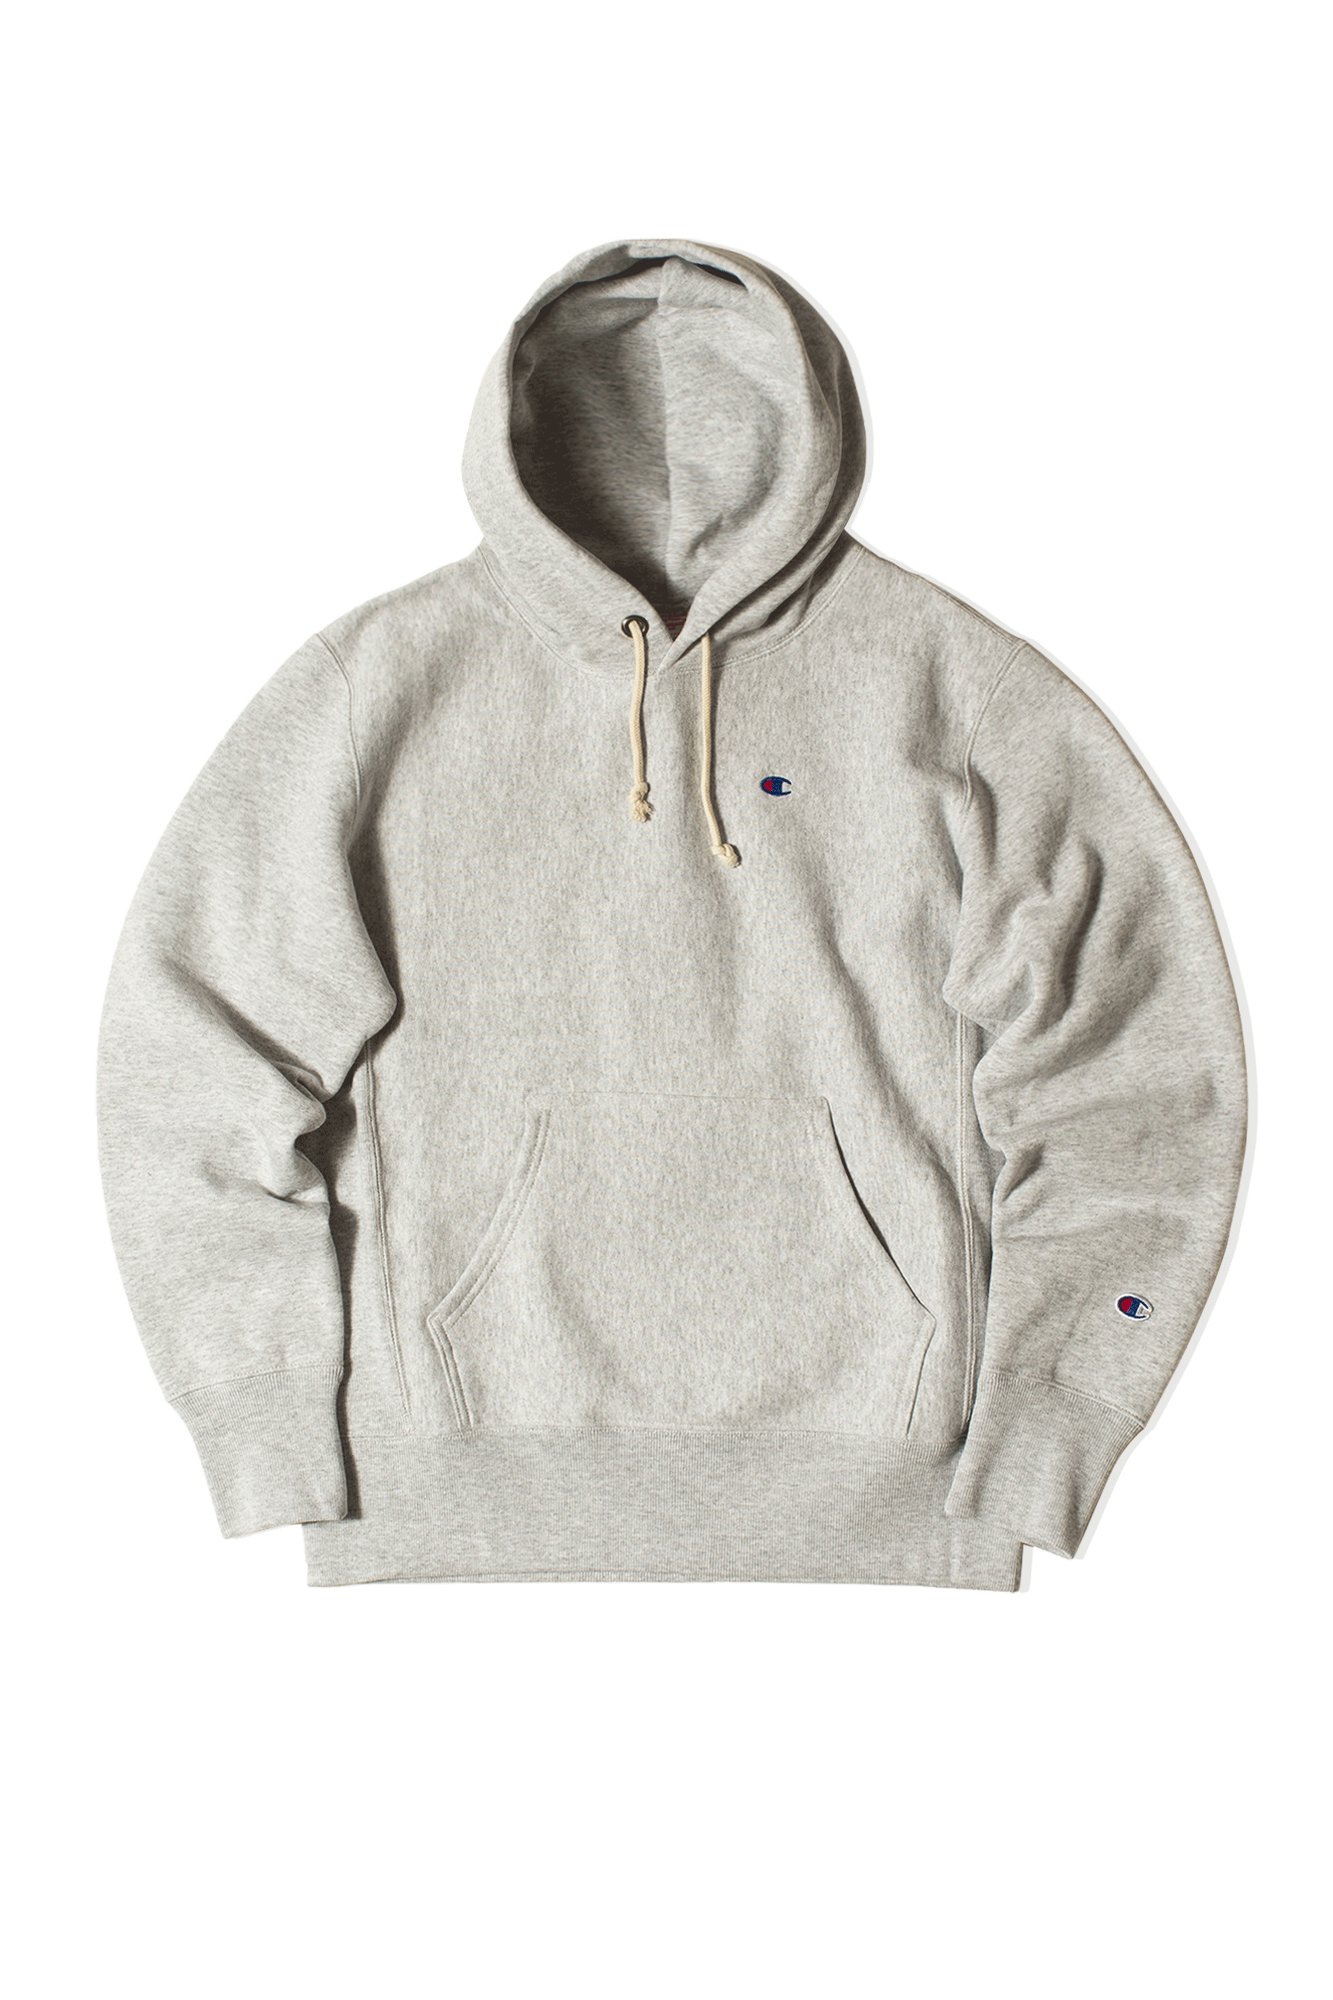 Hooded sweatshirt Grigio